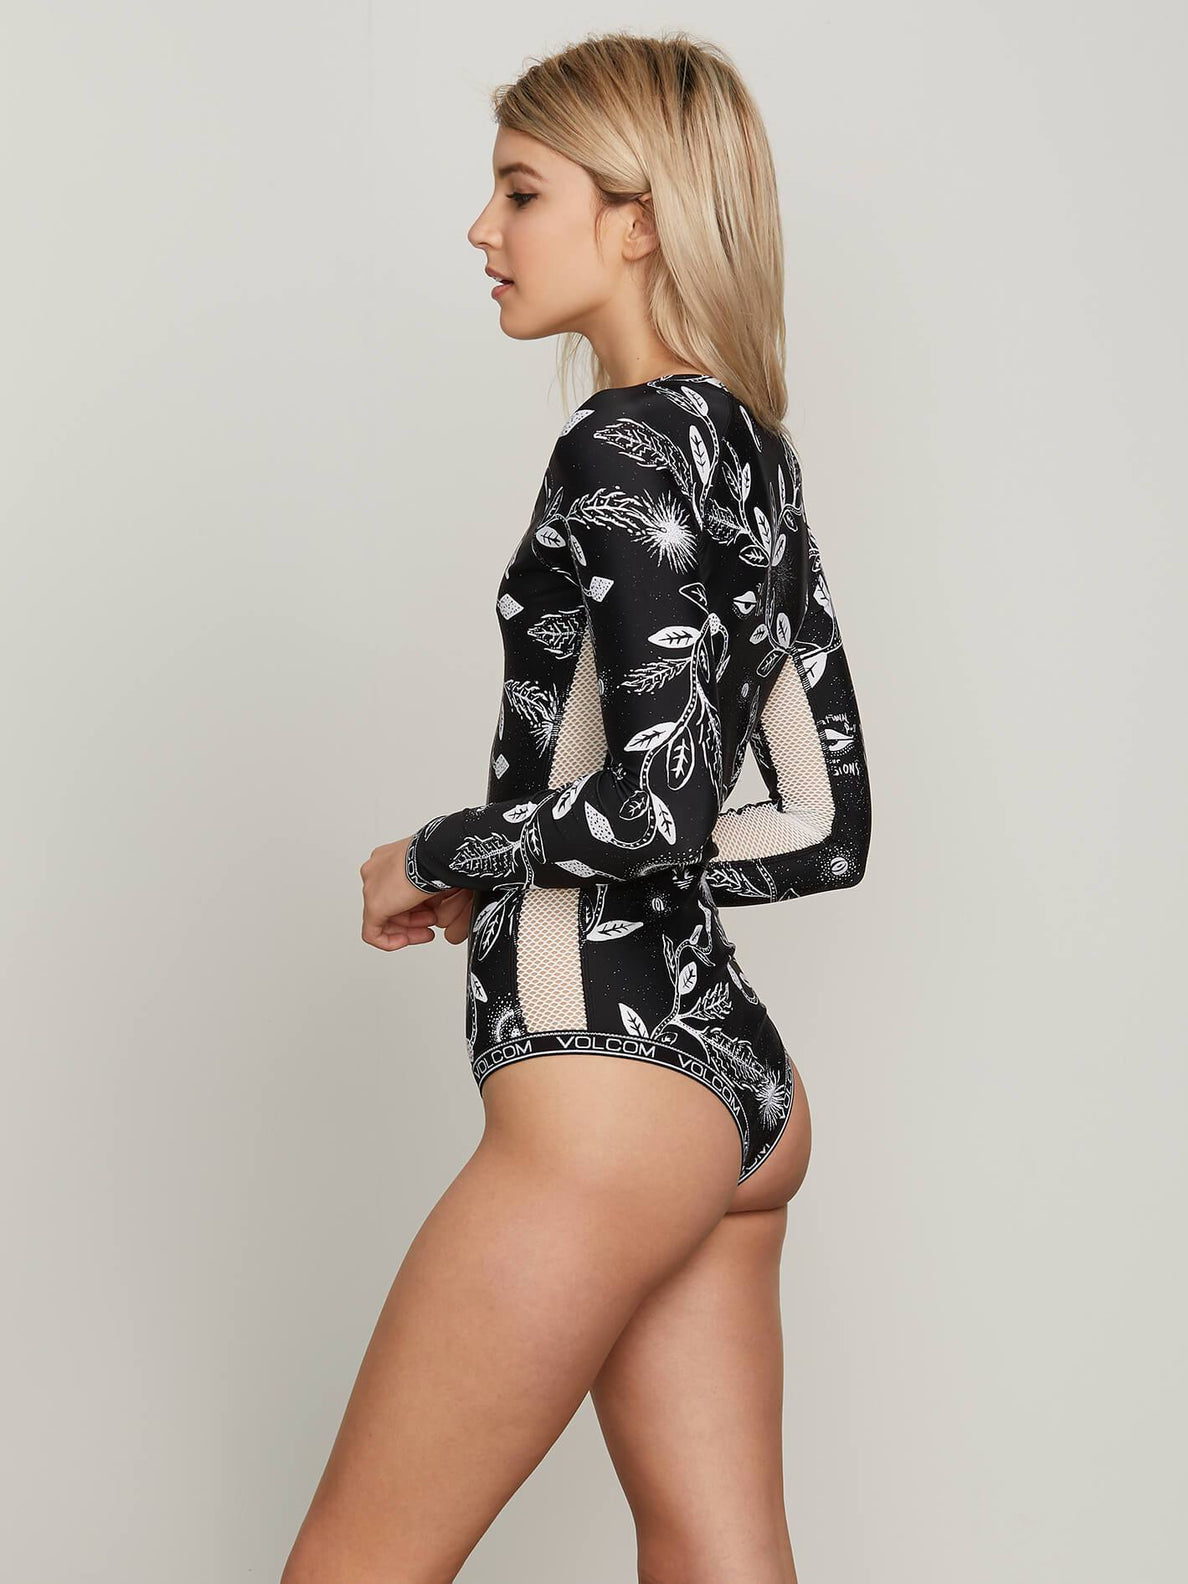 Heavy Petal Bodysuit In Black, Alternate View